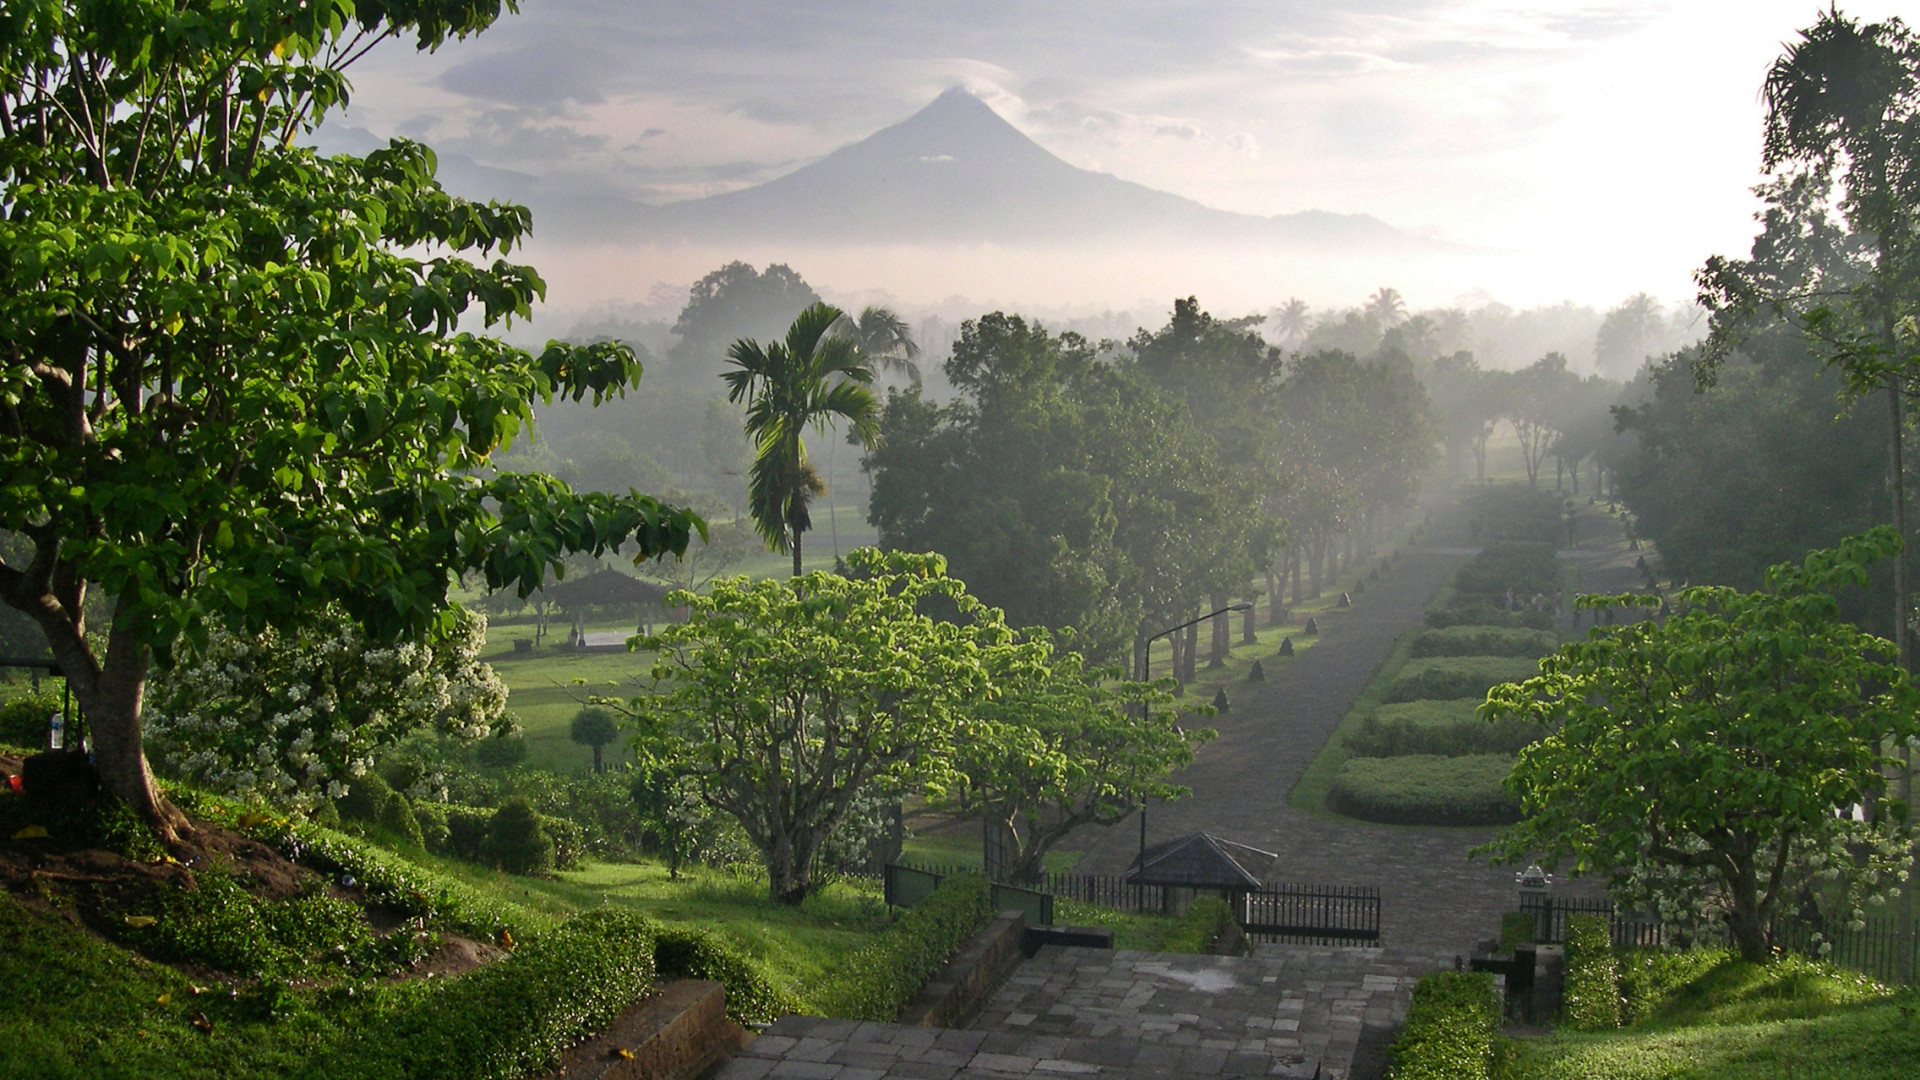 Mists at Candi Borobudur temple, Indonesia